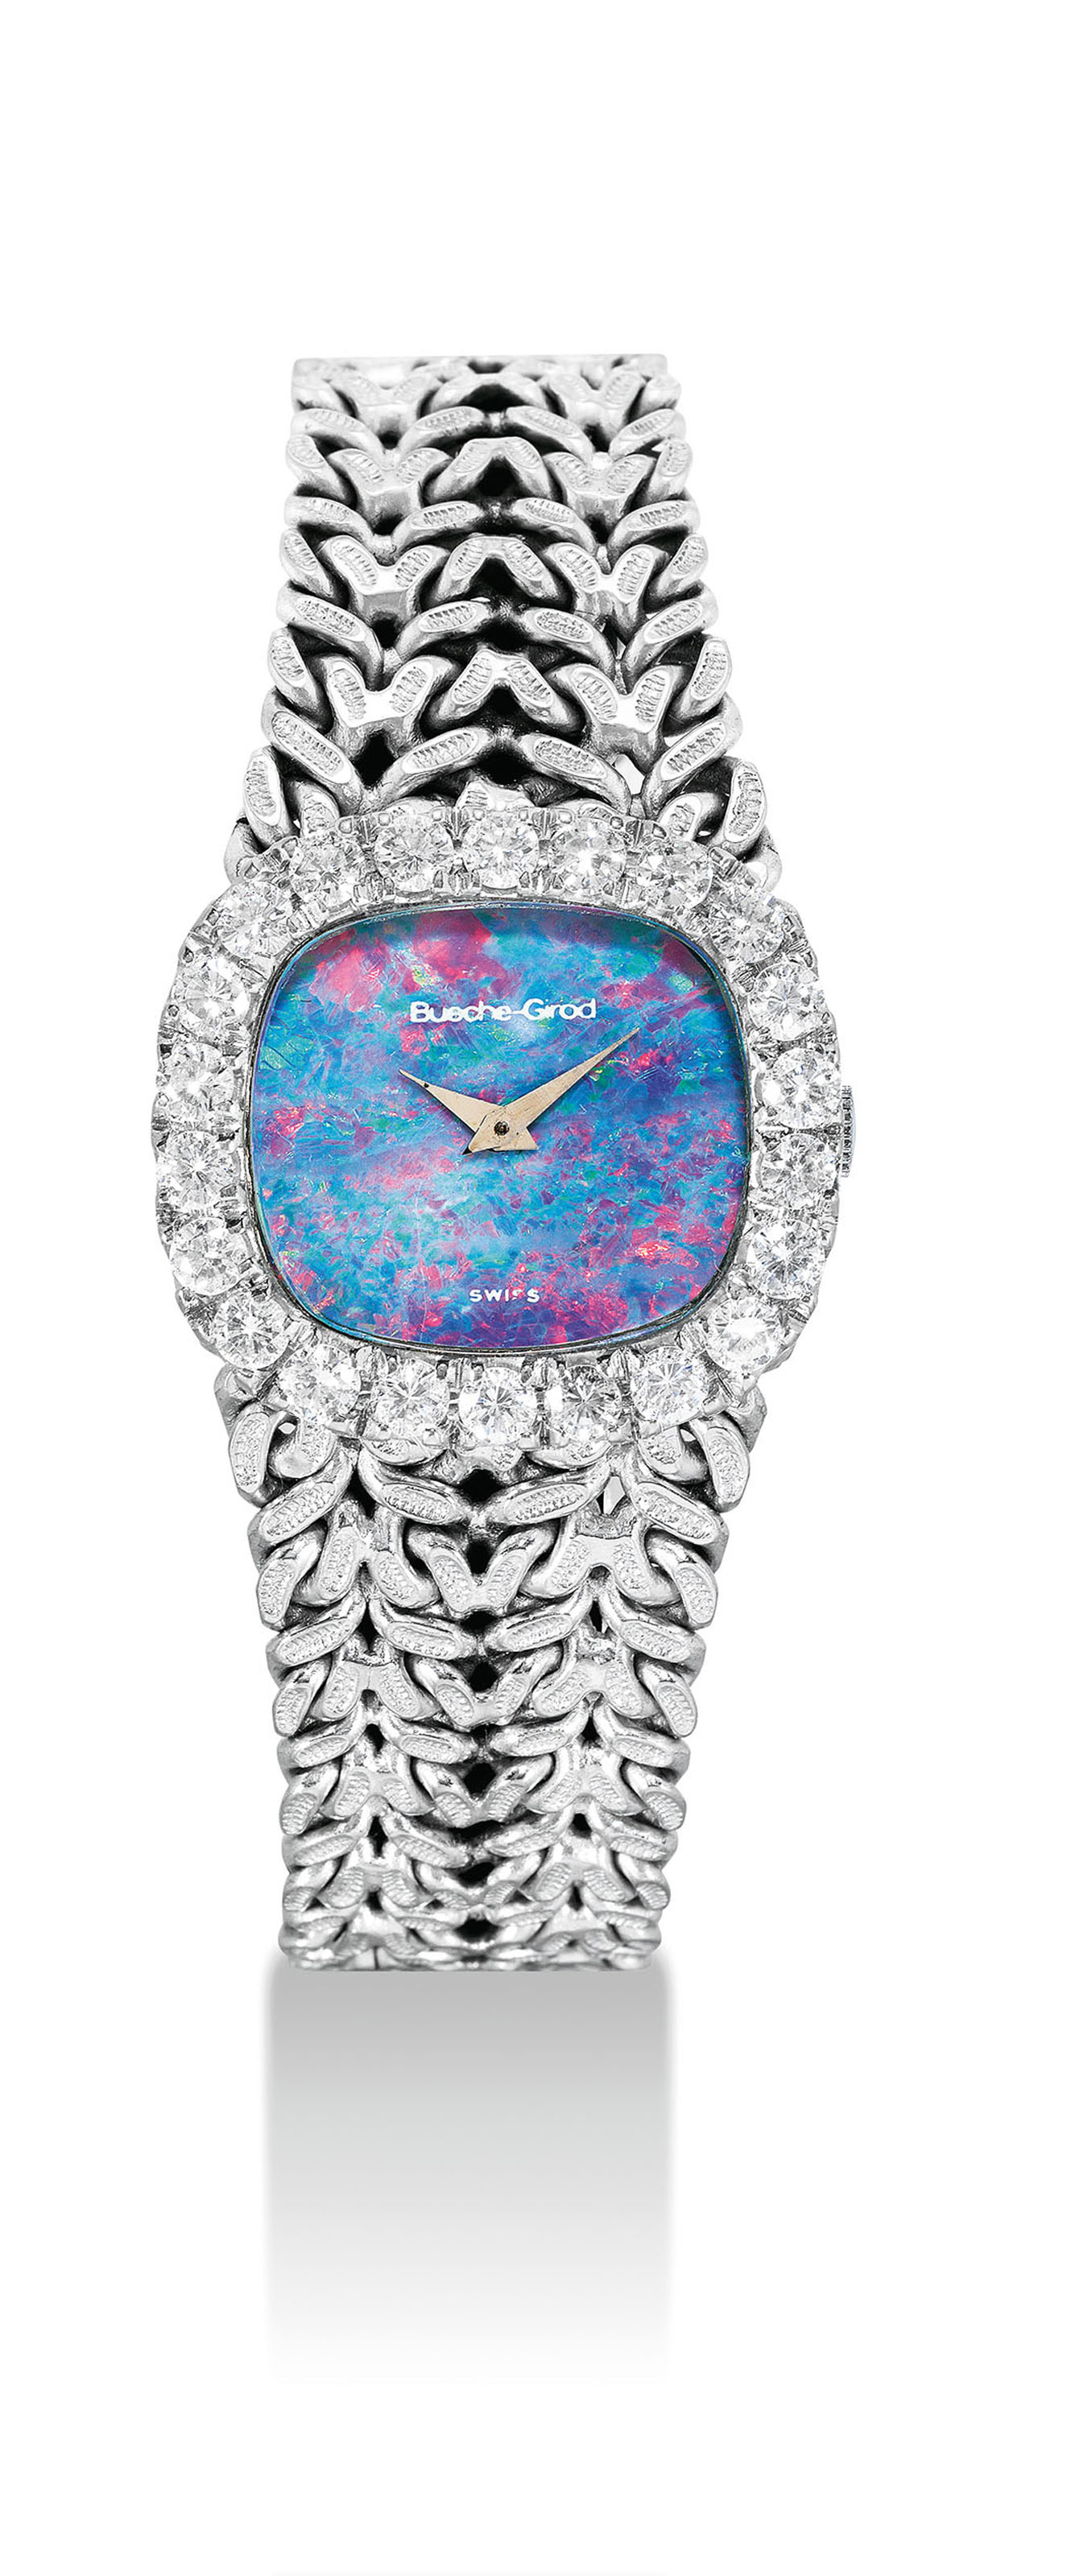 BUECHE-GIROD. AN 18K WHITE GOLD AND DIAMOND-SET CUSHION-SHAPED BRACELET WATCH WITH OPAL DIAL